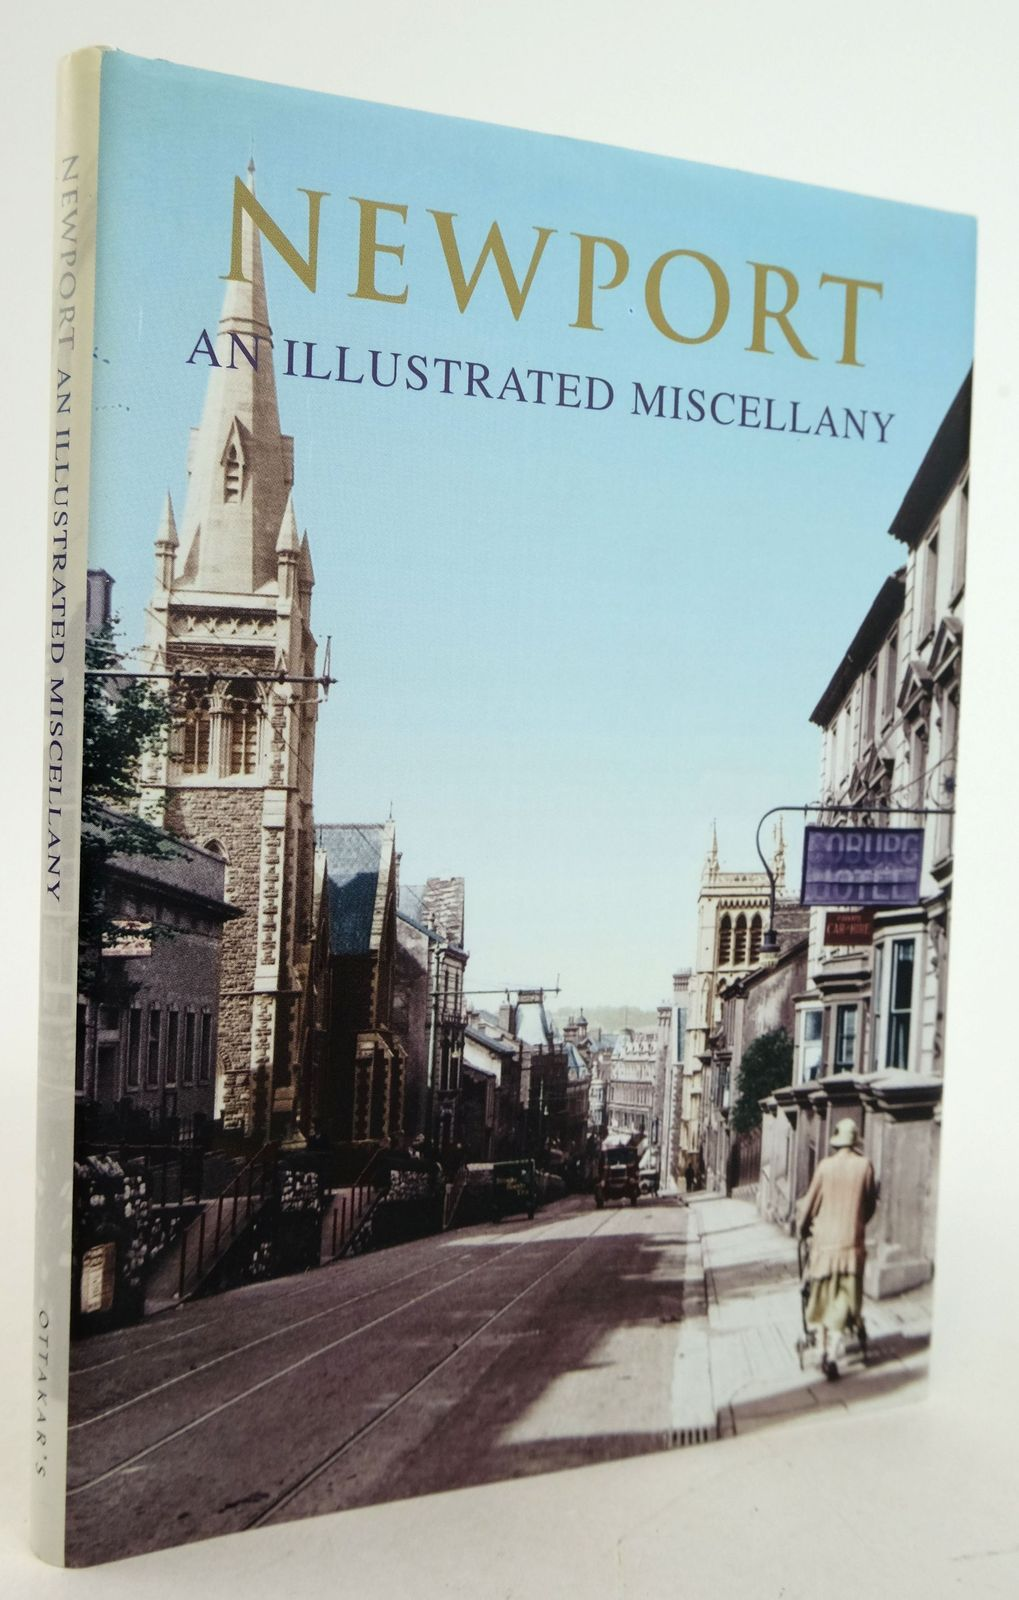 Photo of NEWPORT: AN ILLUSTRATED MISCELLANY illustrated by Frith, Francis published by Ottakar's (STOCK CODE: 1819762)  for sale by Stella & Rose's Books